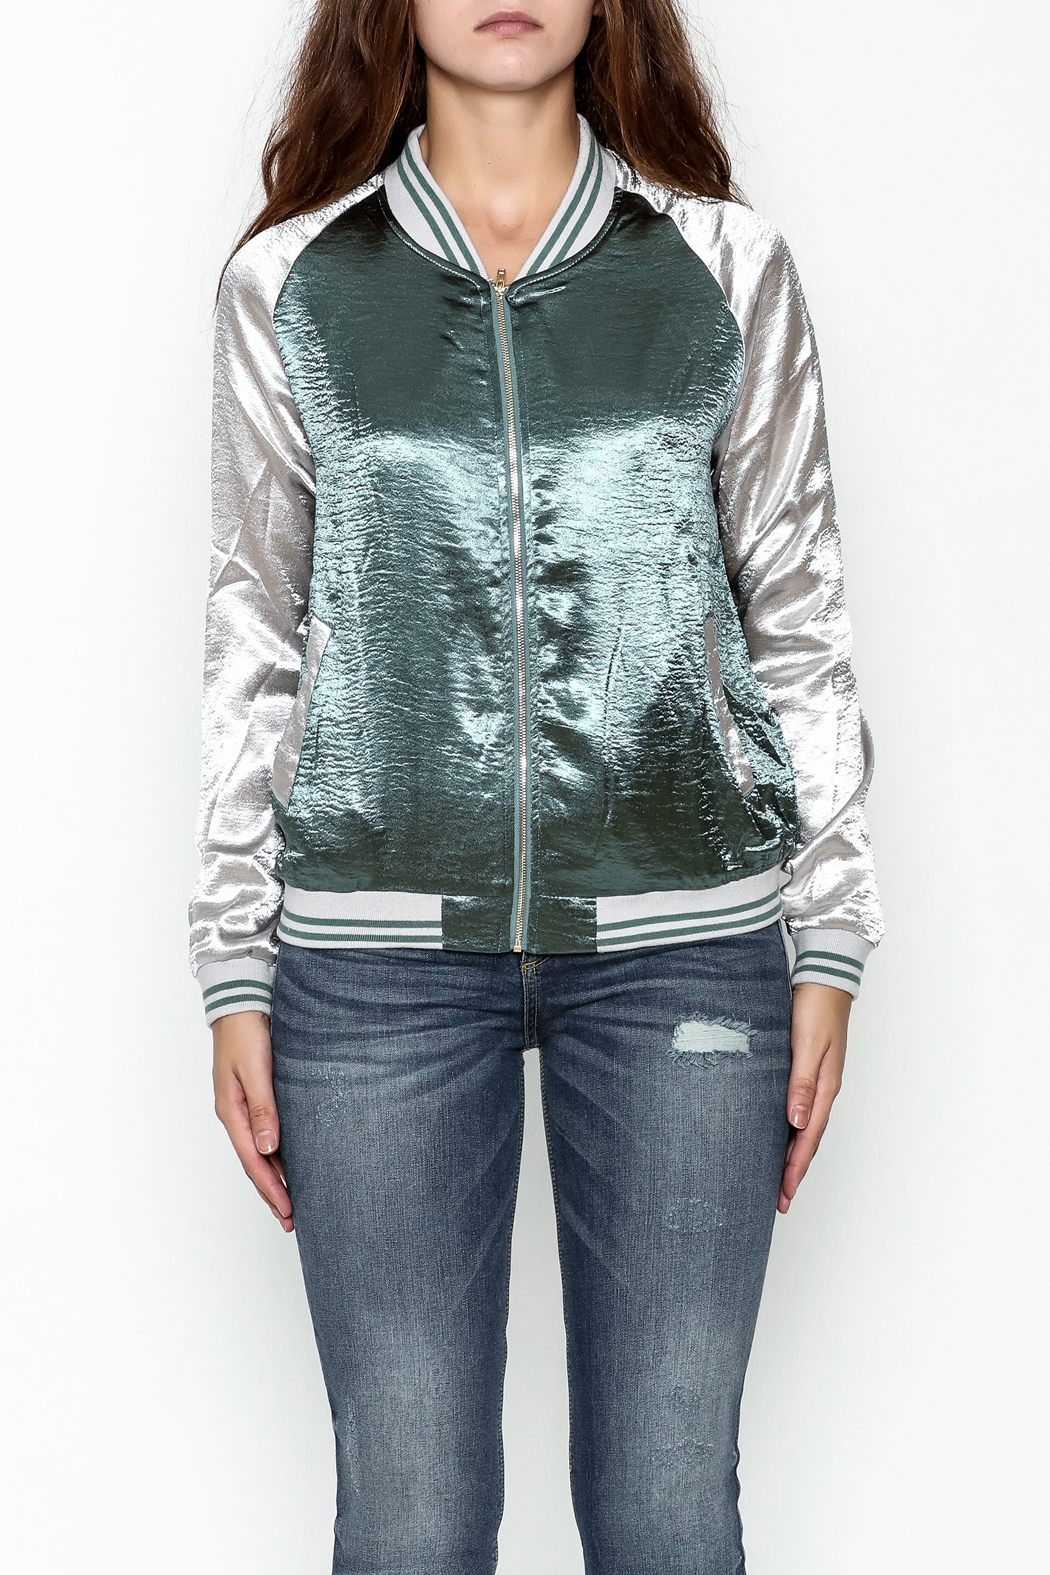 She + Sky Ashton Bomber Jacket - Front Full Image